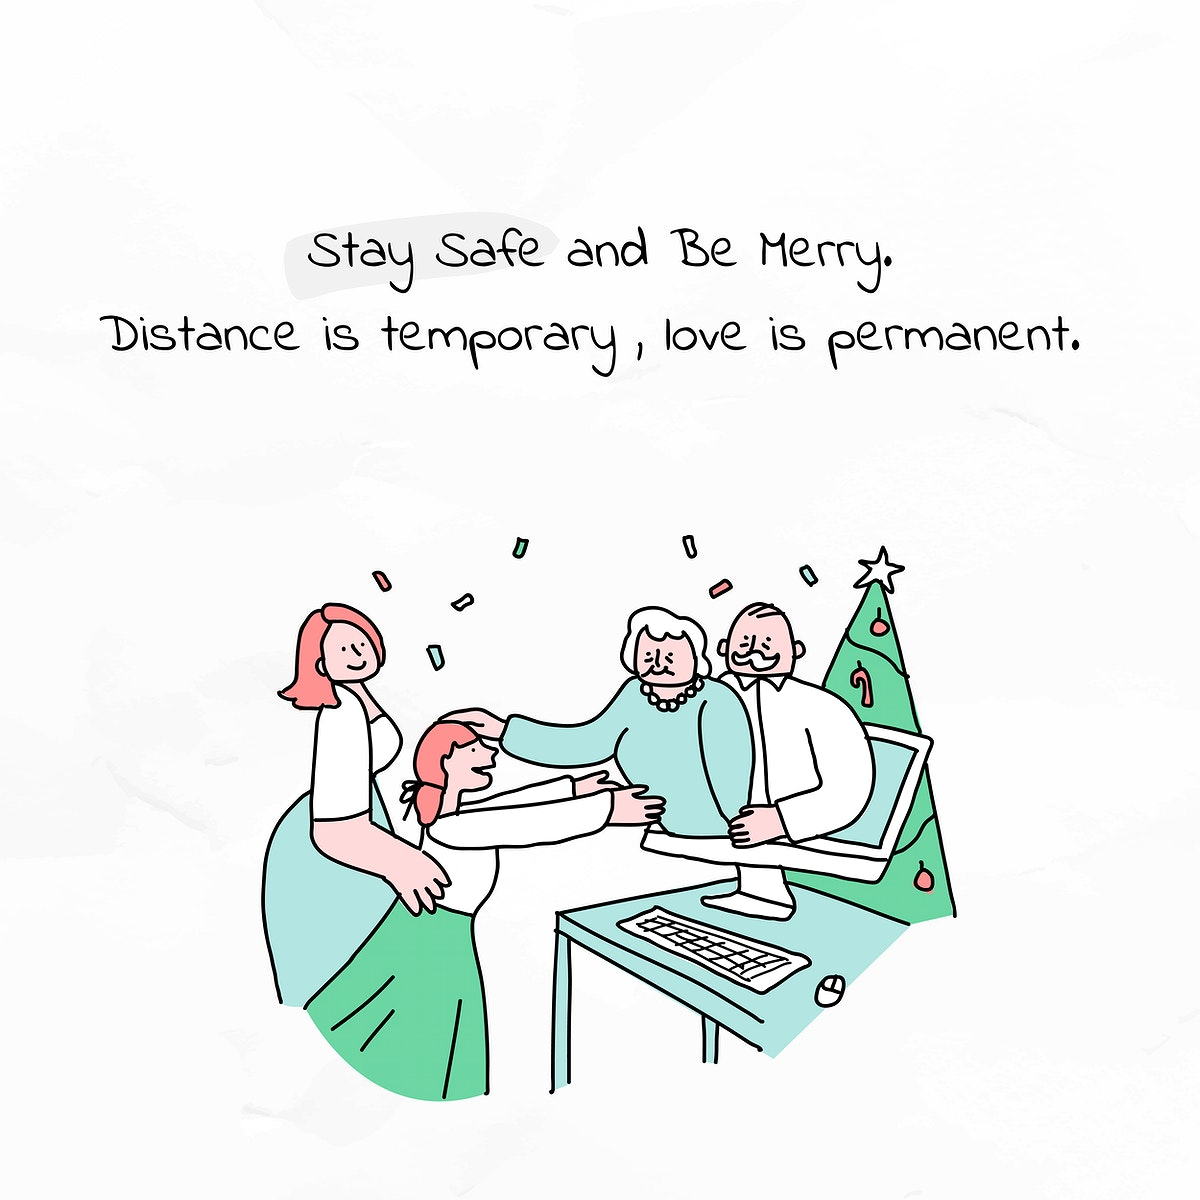 Stay safe and be merry Christmas greeting poster